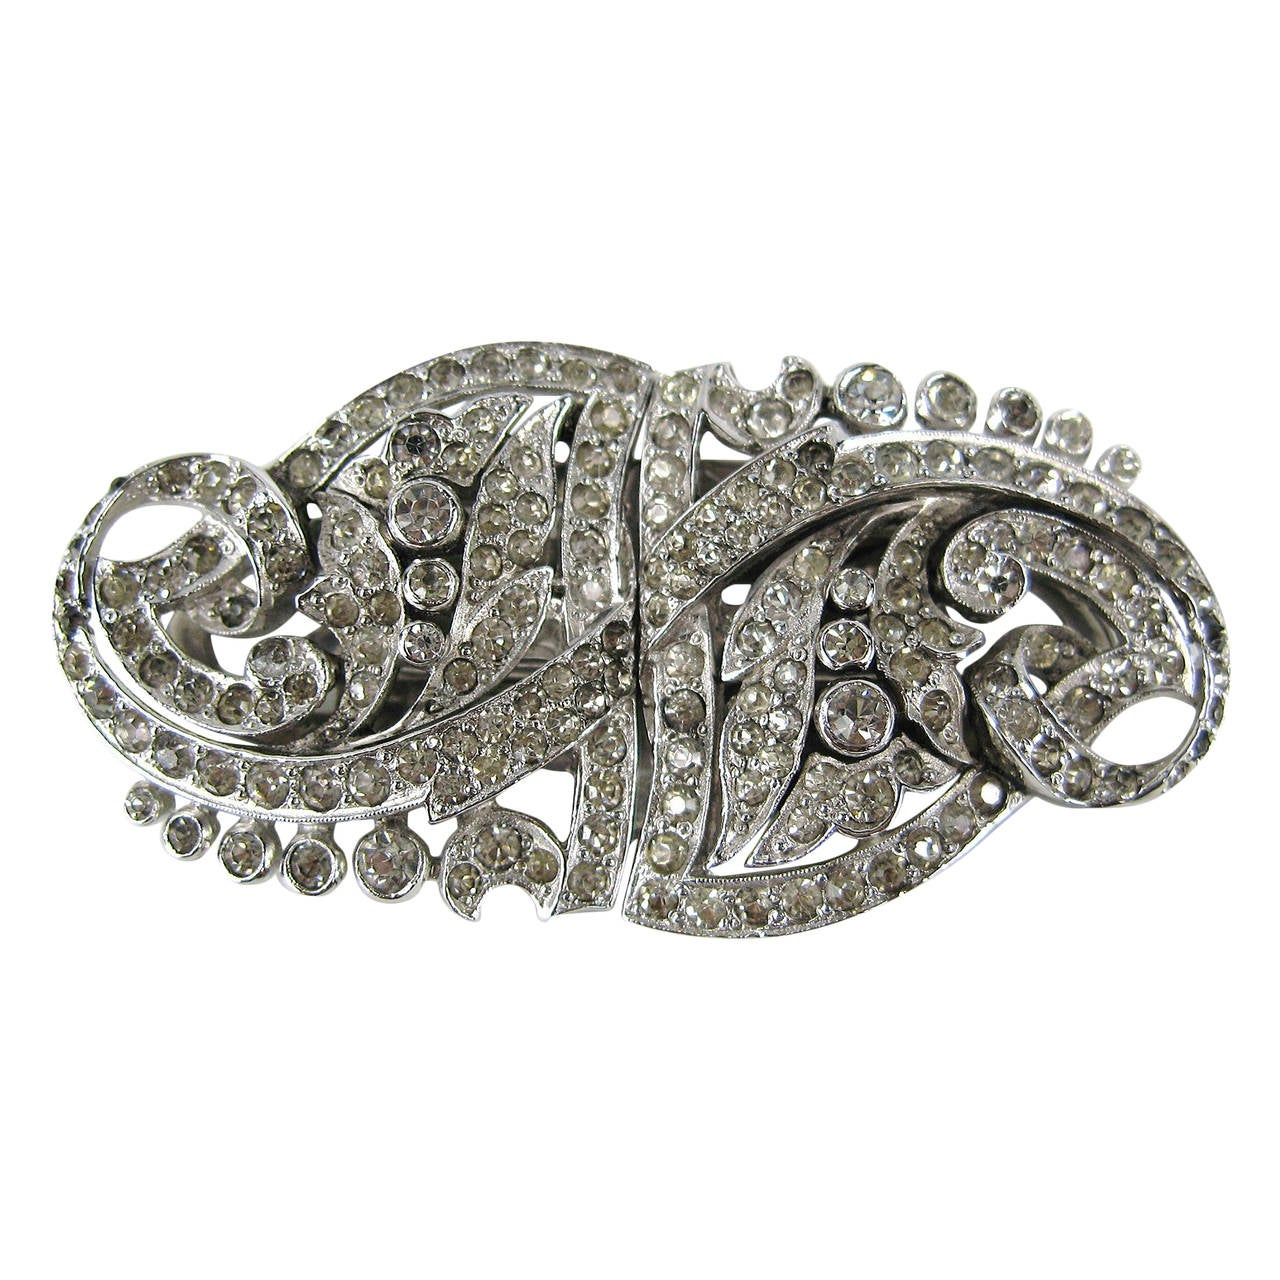 1940s Rhinestone Old Hollywood Coat Clip Brooch 1